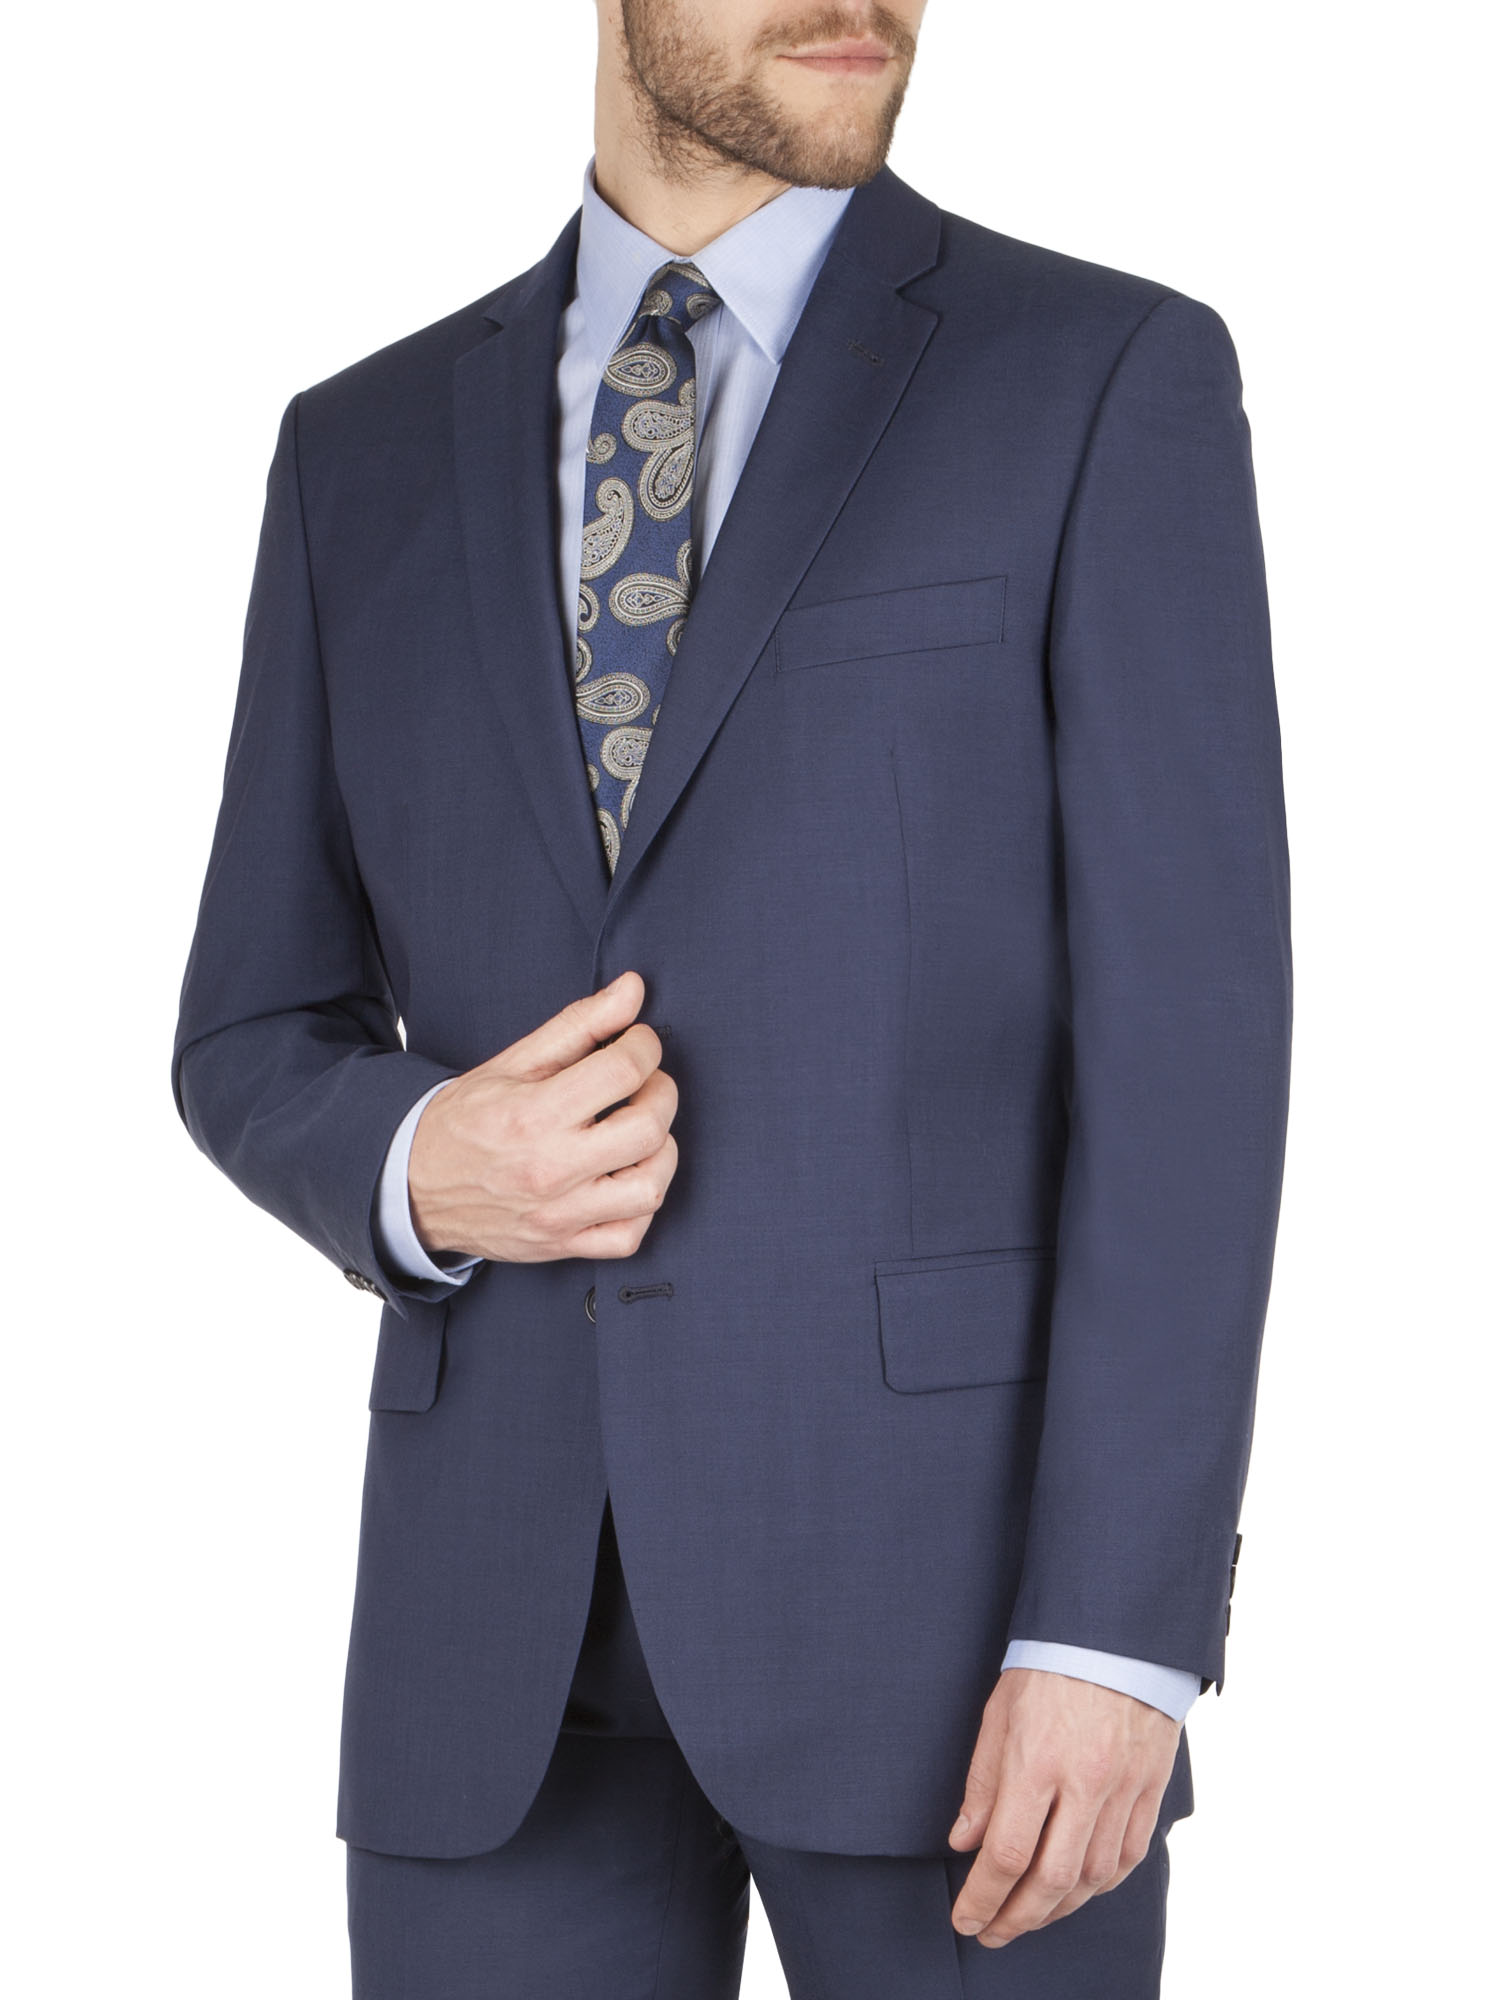 """Regular Fit Suits. A great choice for a business suit, wardrobe staple, or a """"go-to"""" for dressed-up events, the regular fit suit is a wearable and elegant option for a multitude of needs."""